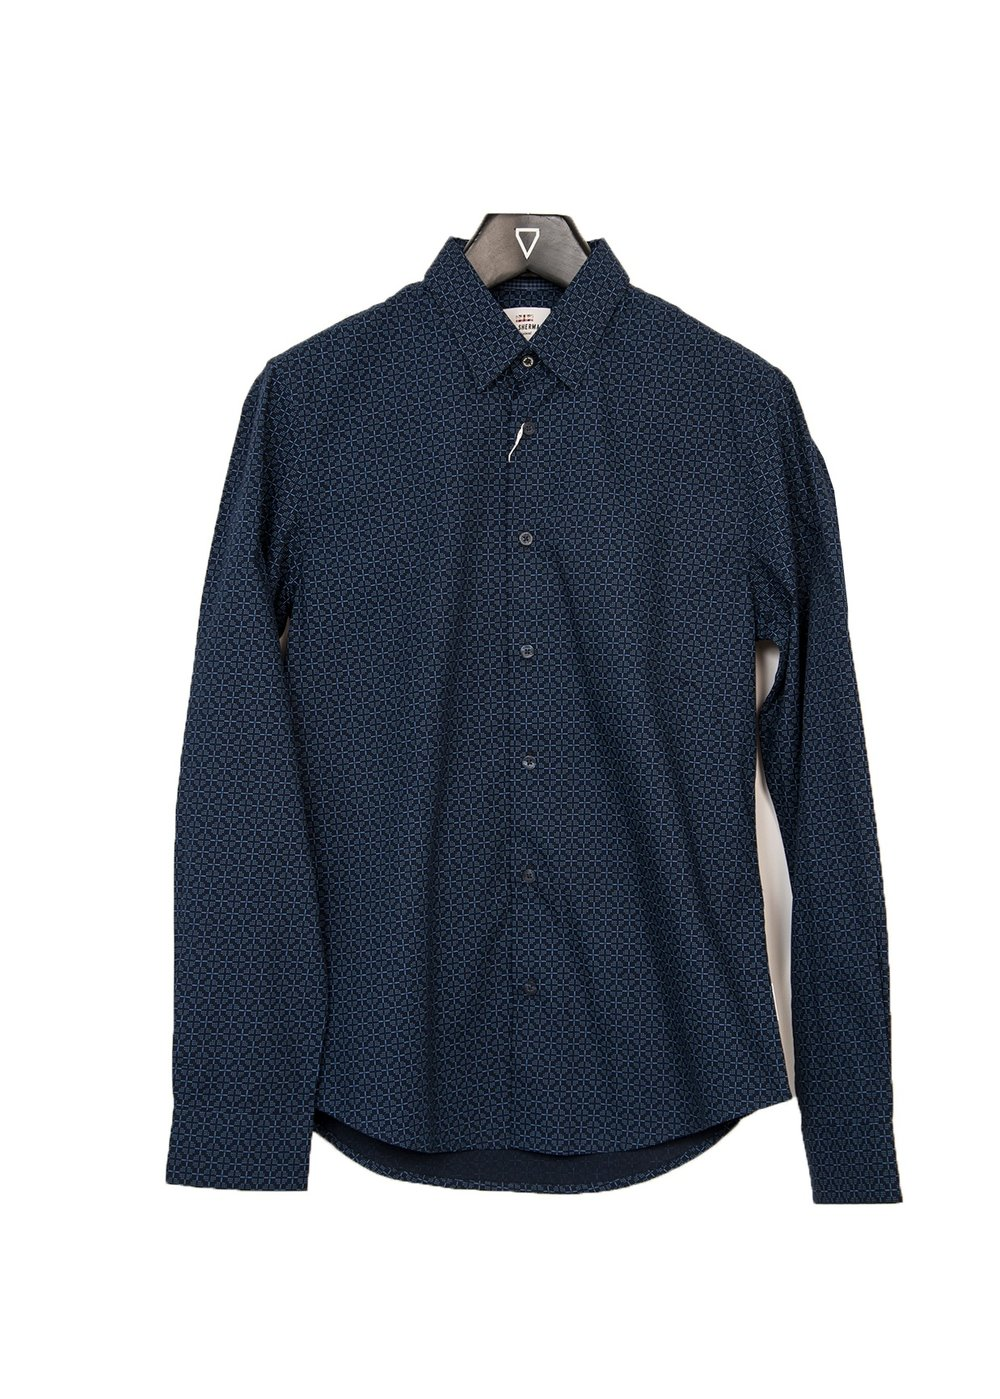 "TED BAKER SHIRT ""TED-SH03"""